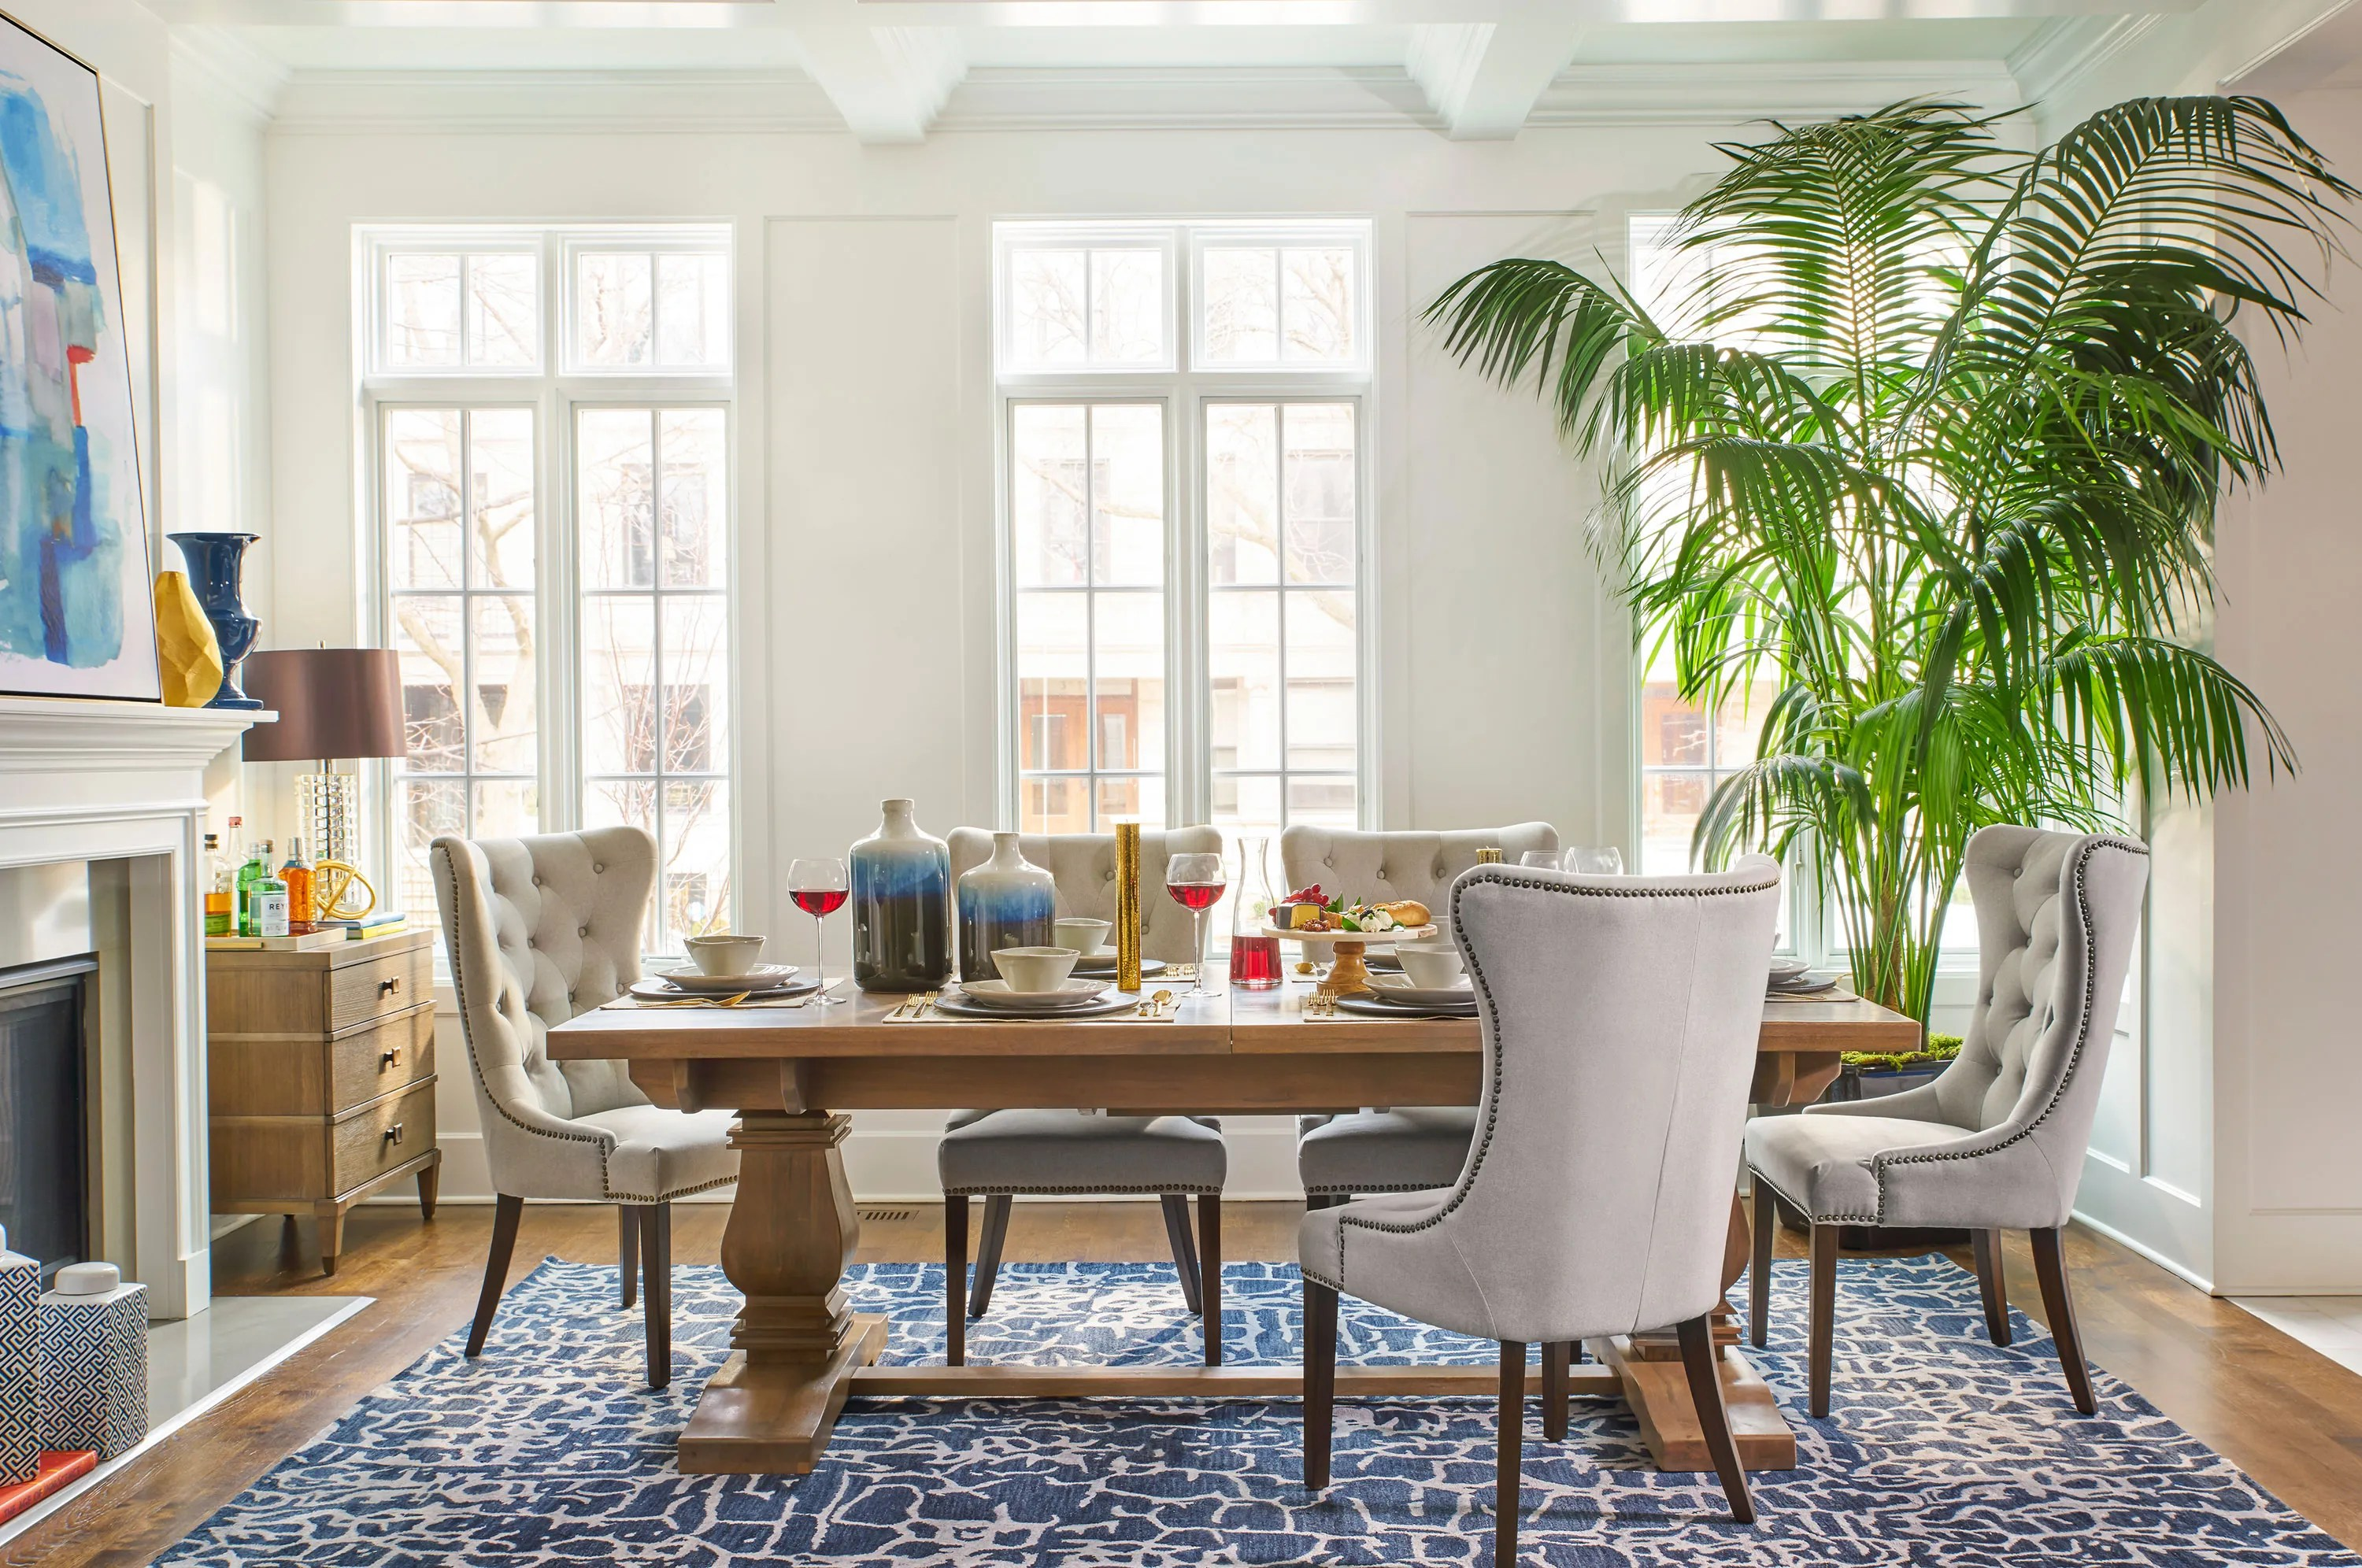 flipping out's jeff lewis shares interior design ideas for every